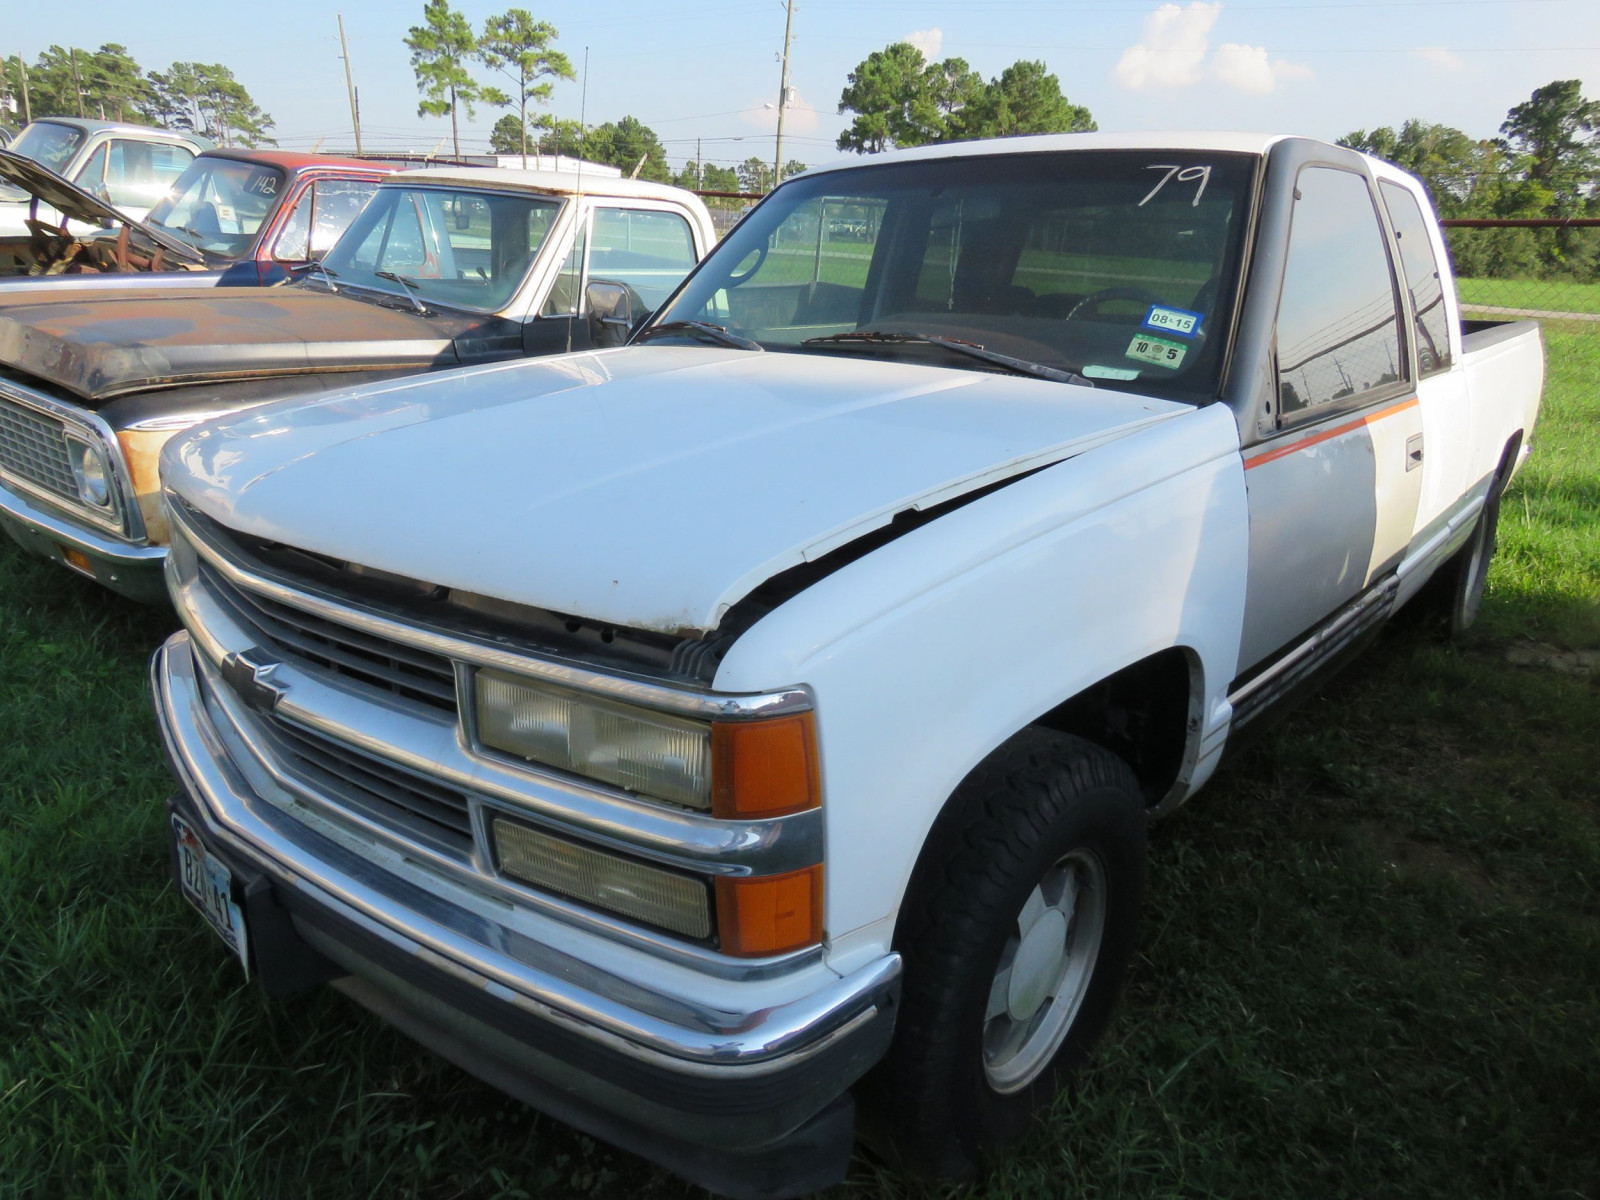 1996 Chevrolet Pickup - Image 1